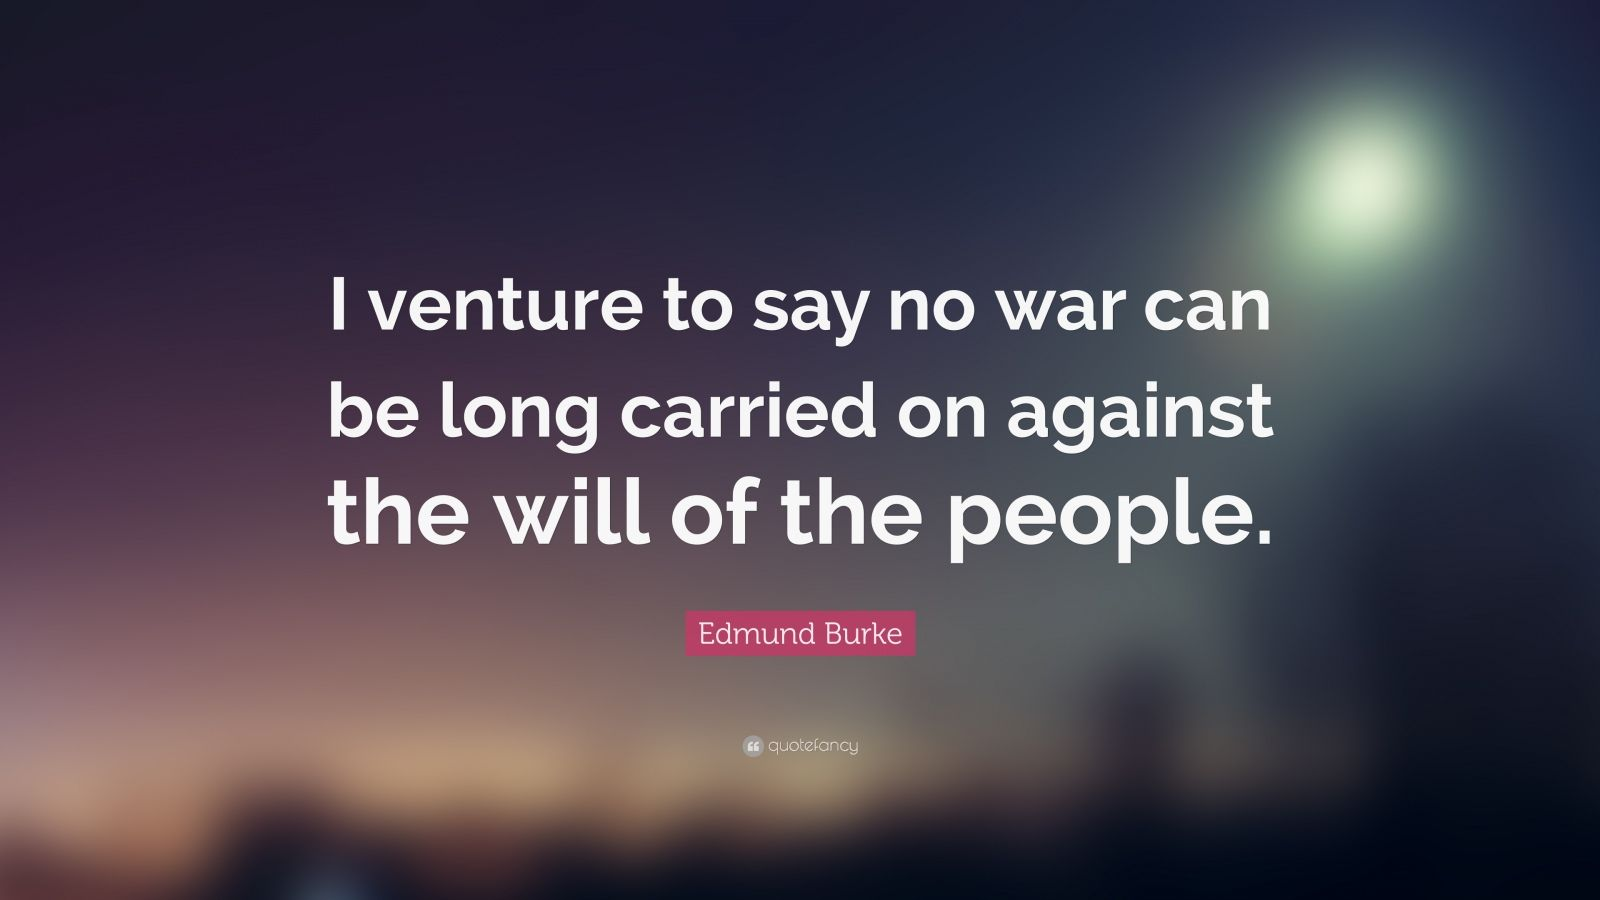 """Edmund Burke Quote: """"I venture to say no war can be long carried on against the will of the people."""""""